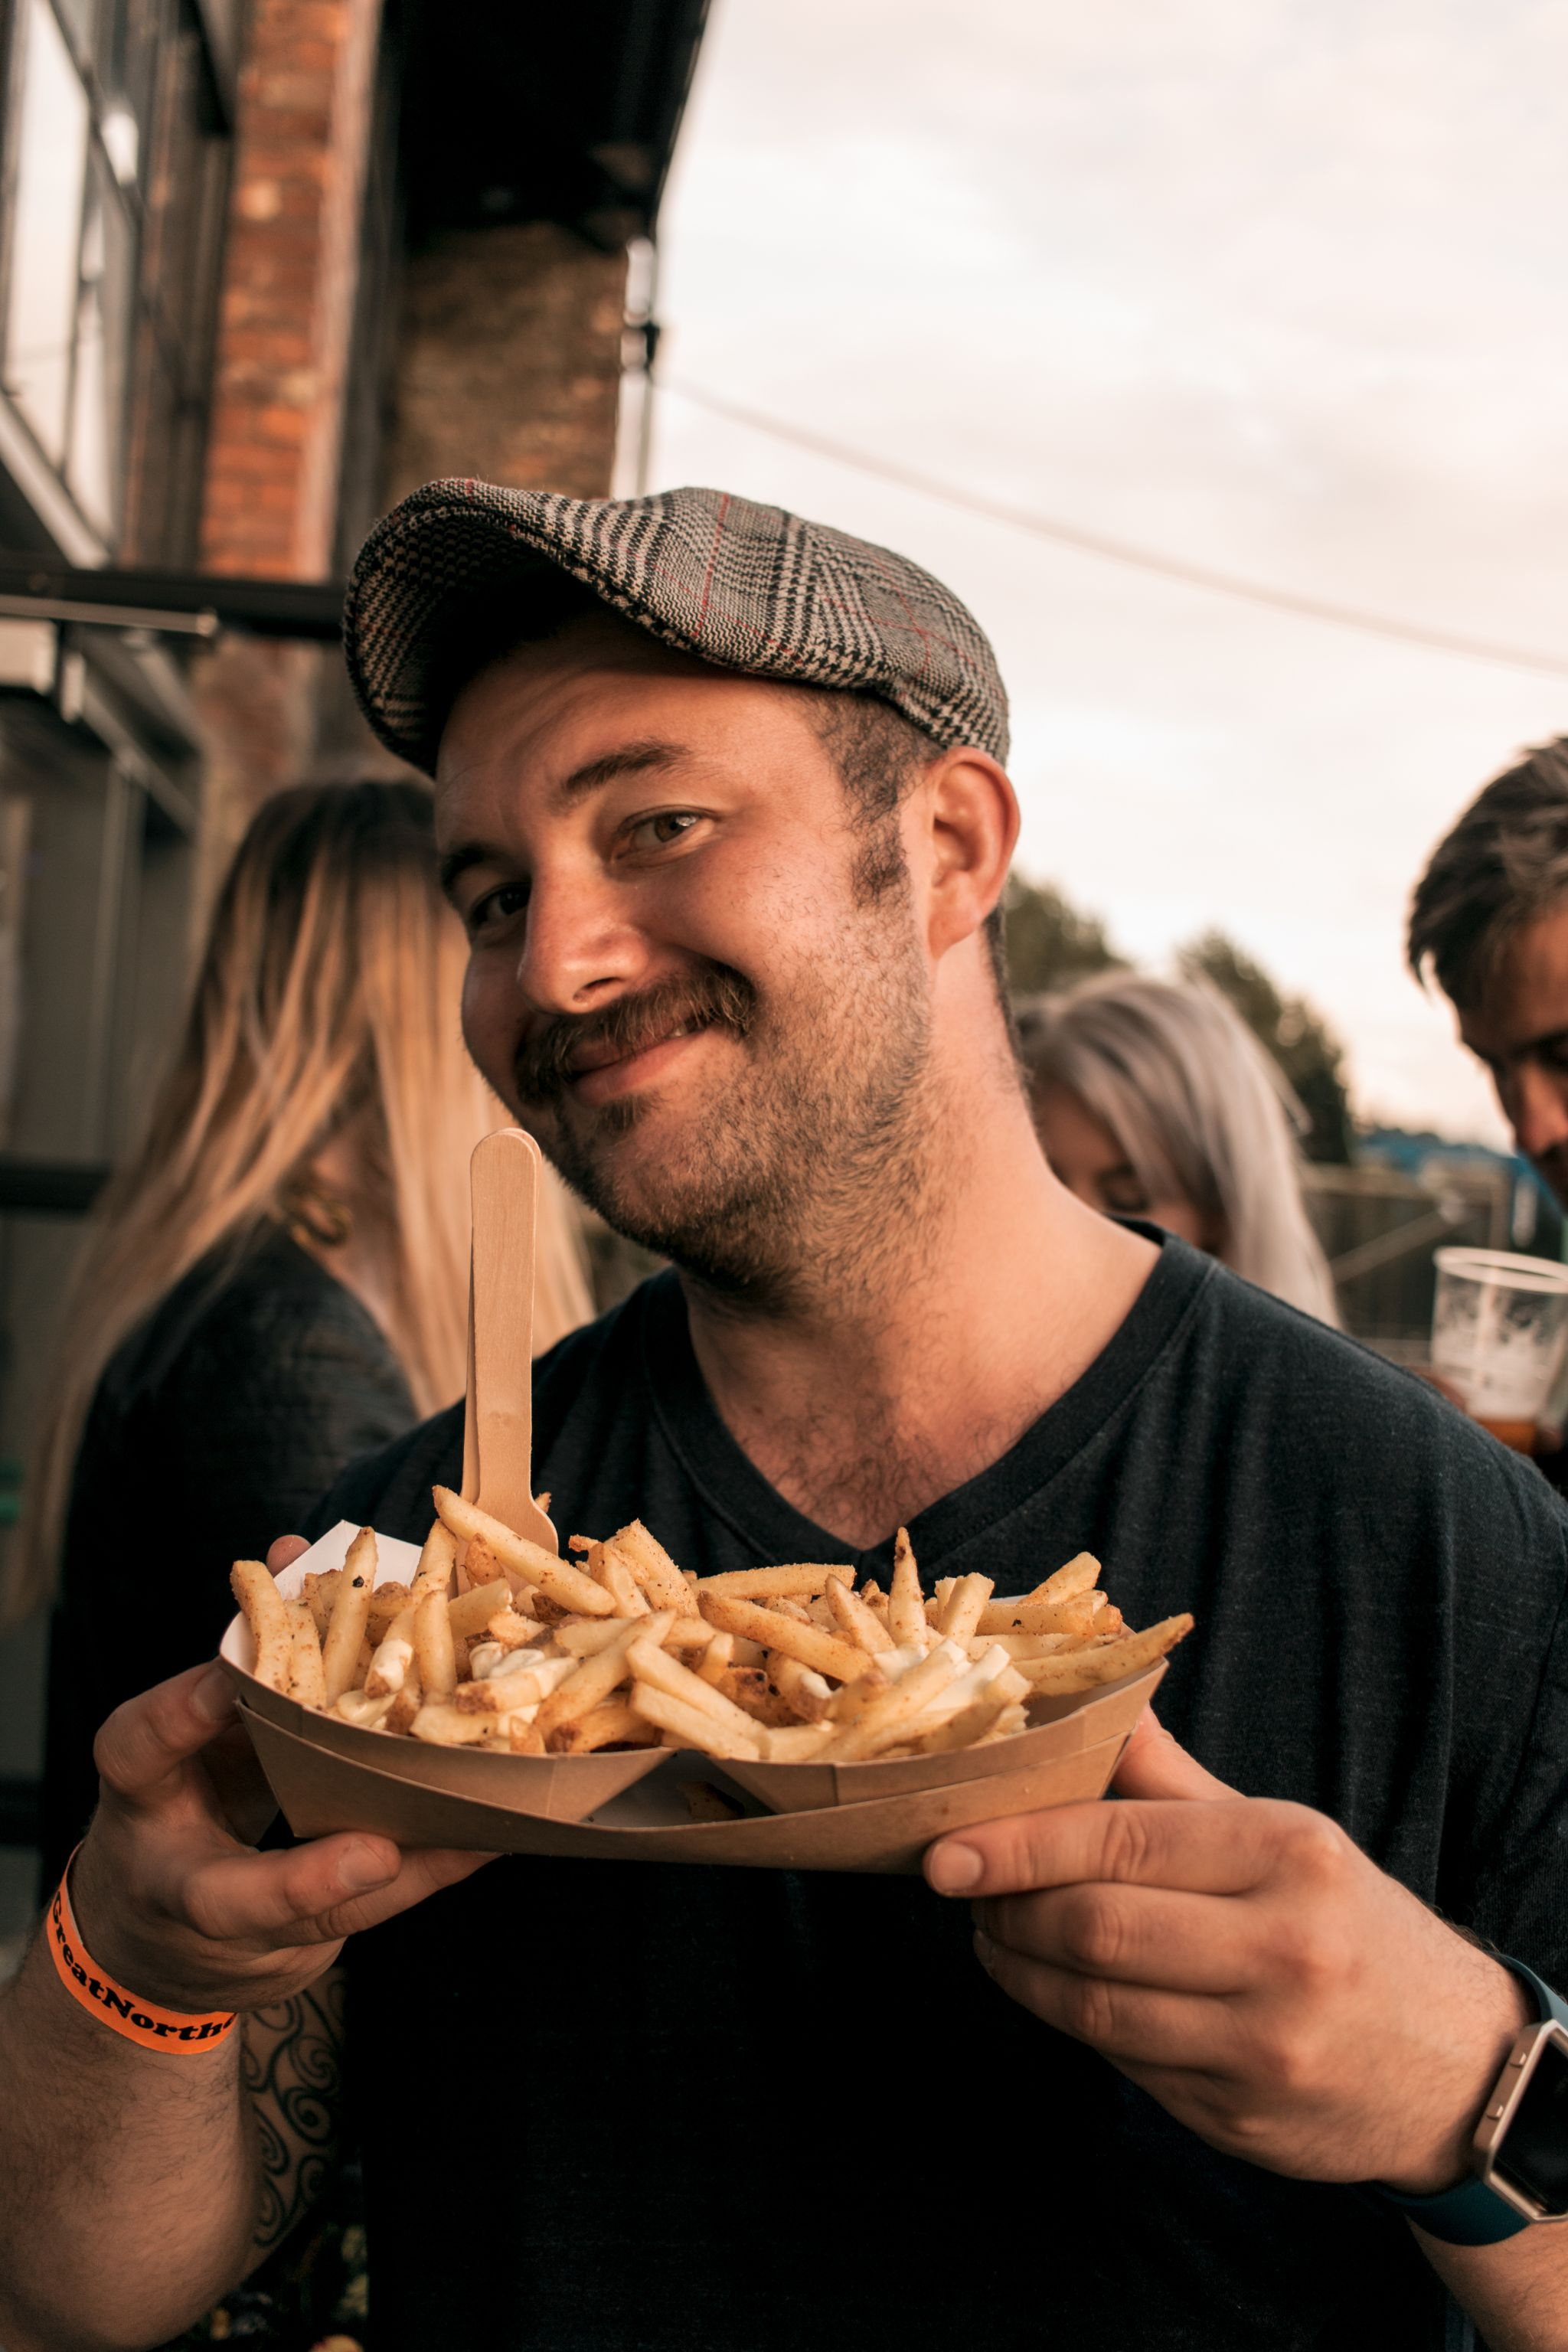 Great-Northern-Soul-Food-Newcastle-event photography-Boiler-Shop-fries-people